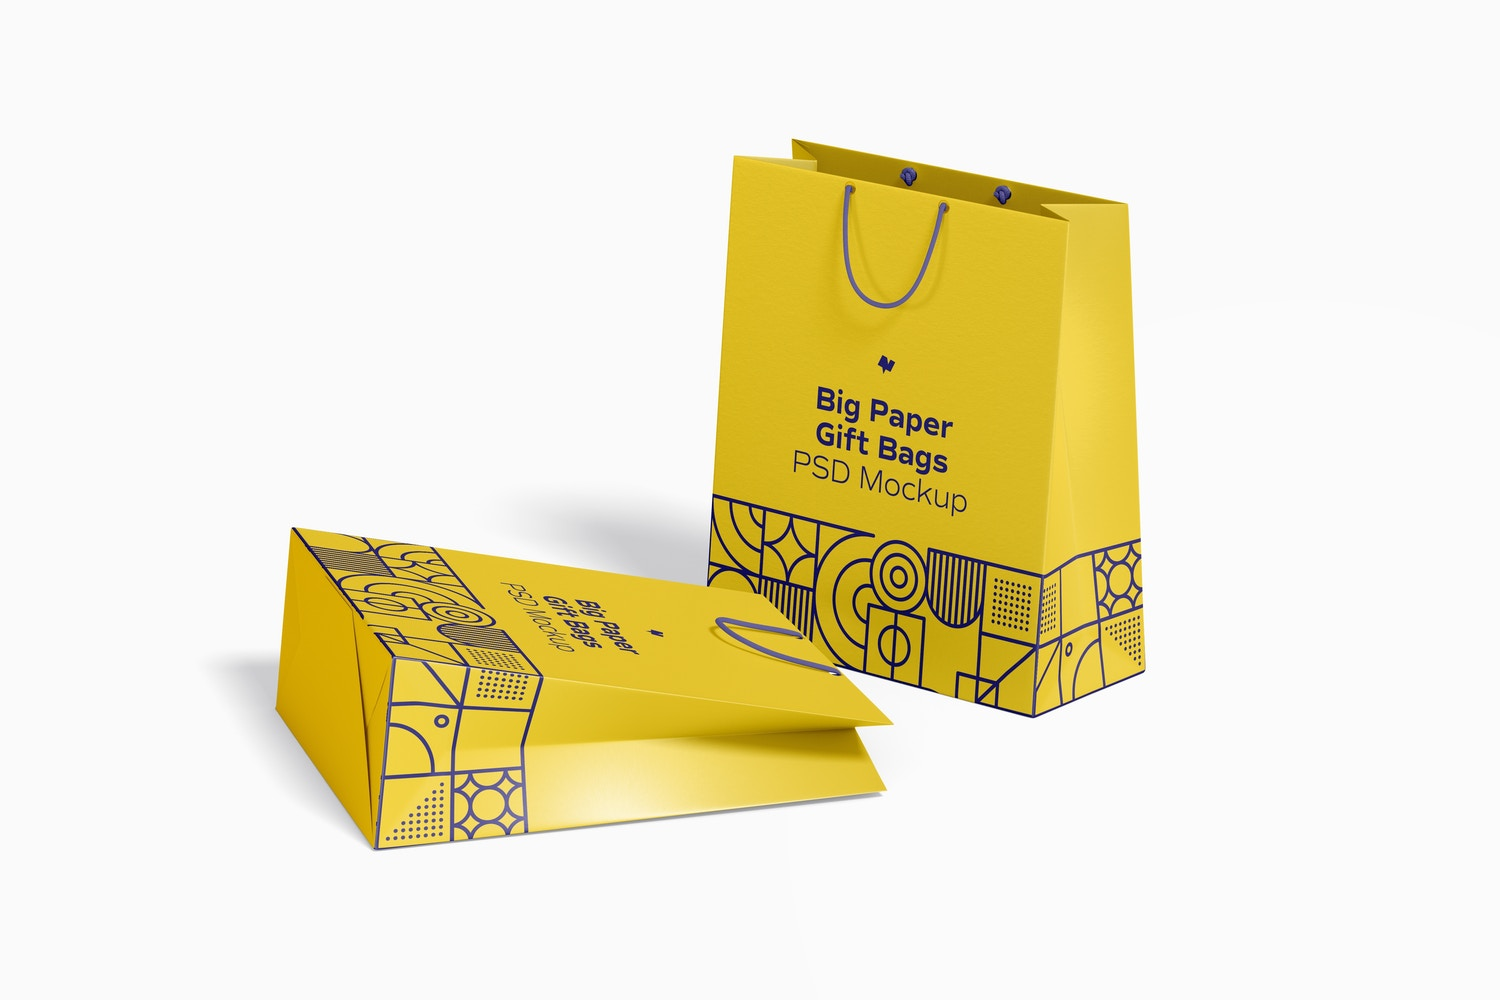 Big Paper Gift Bags With Rope Handle Mockup, Dropped